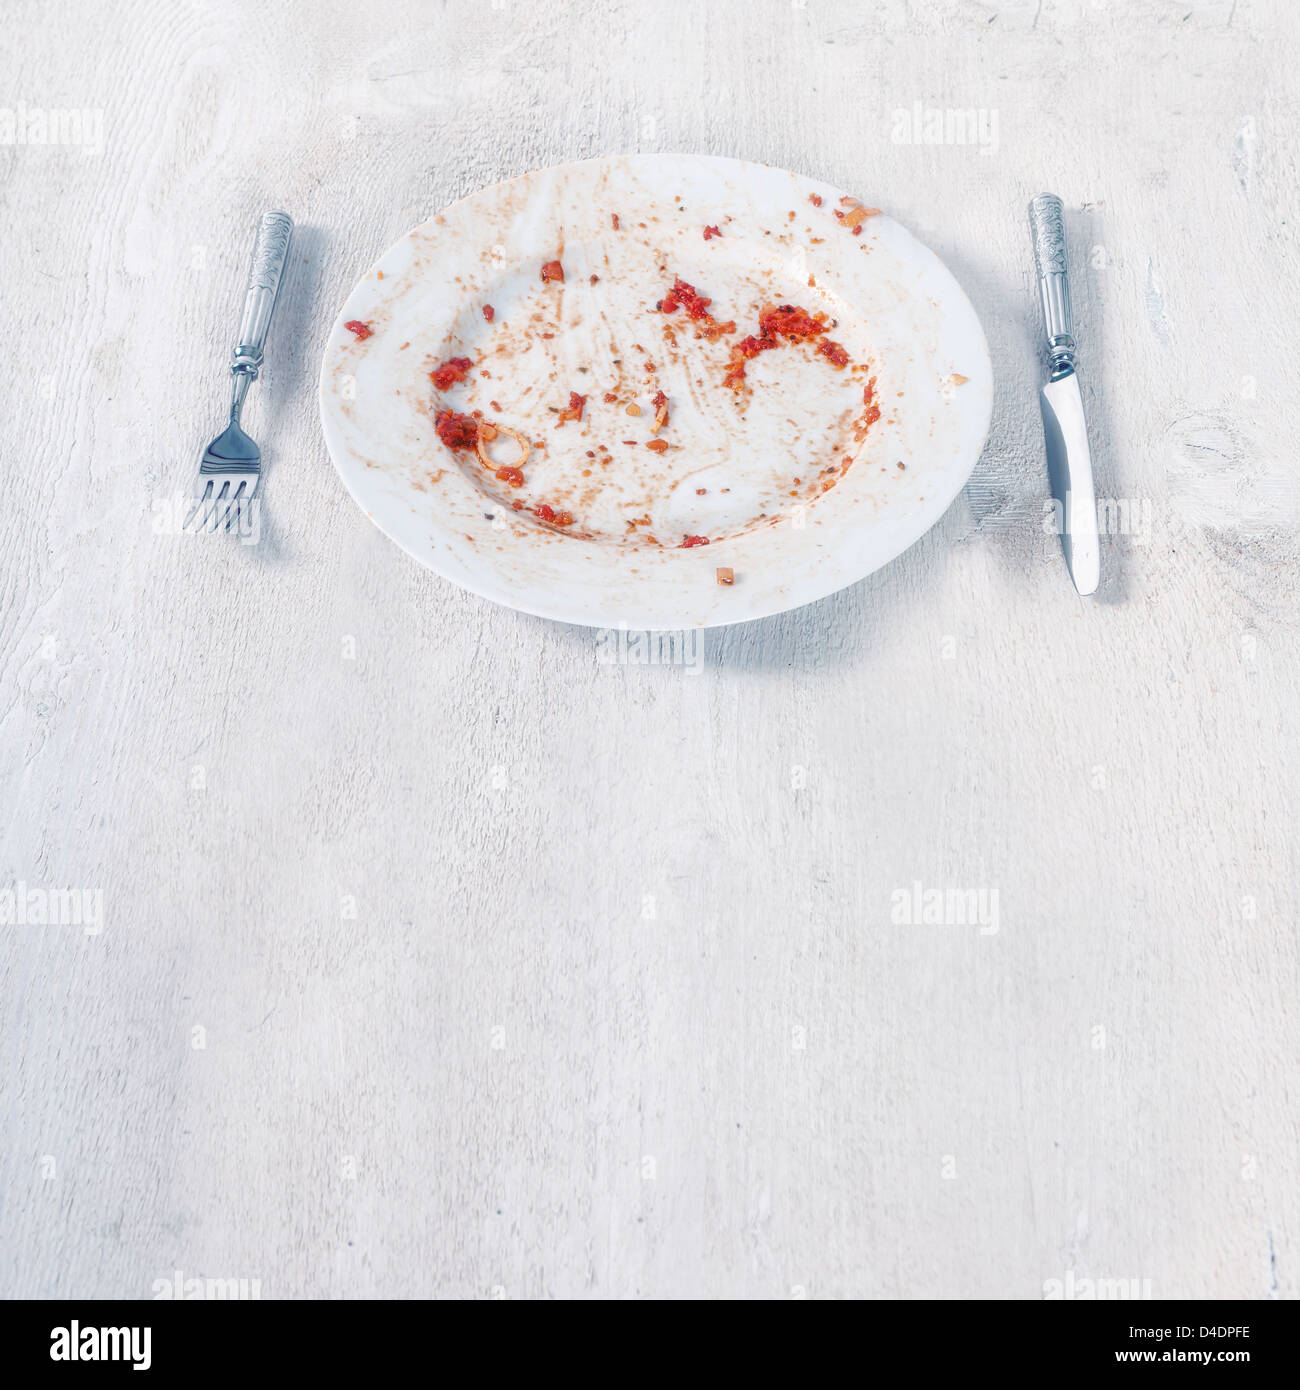 a finished plate with leftovers of tomatoe sauce and pasta - Stock Image